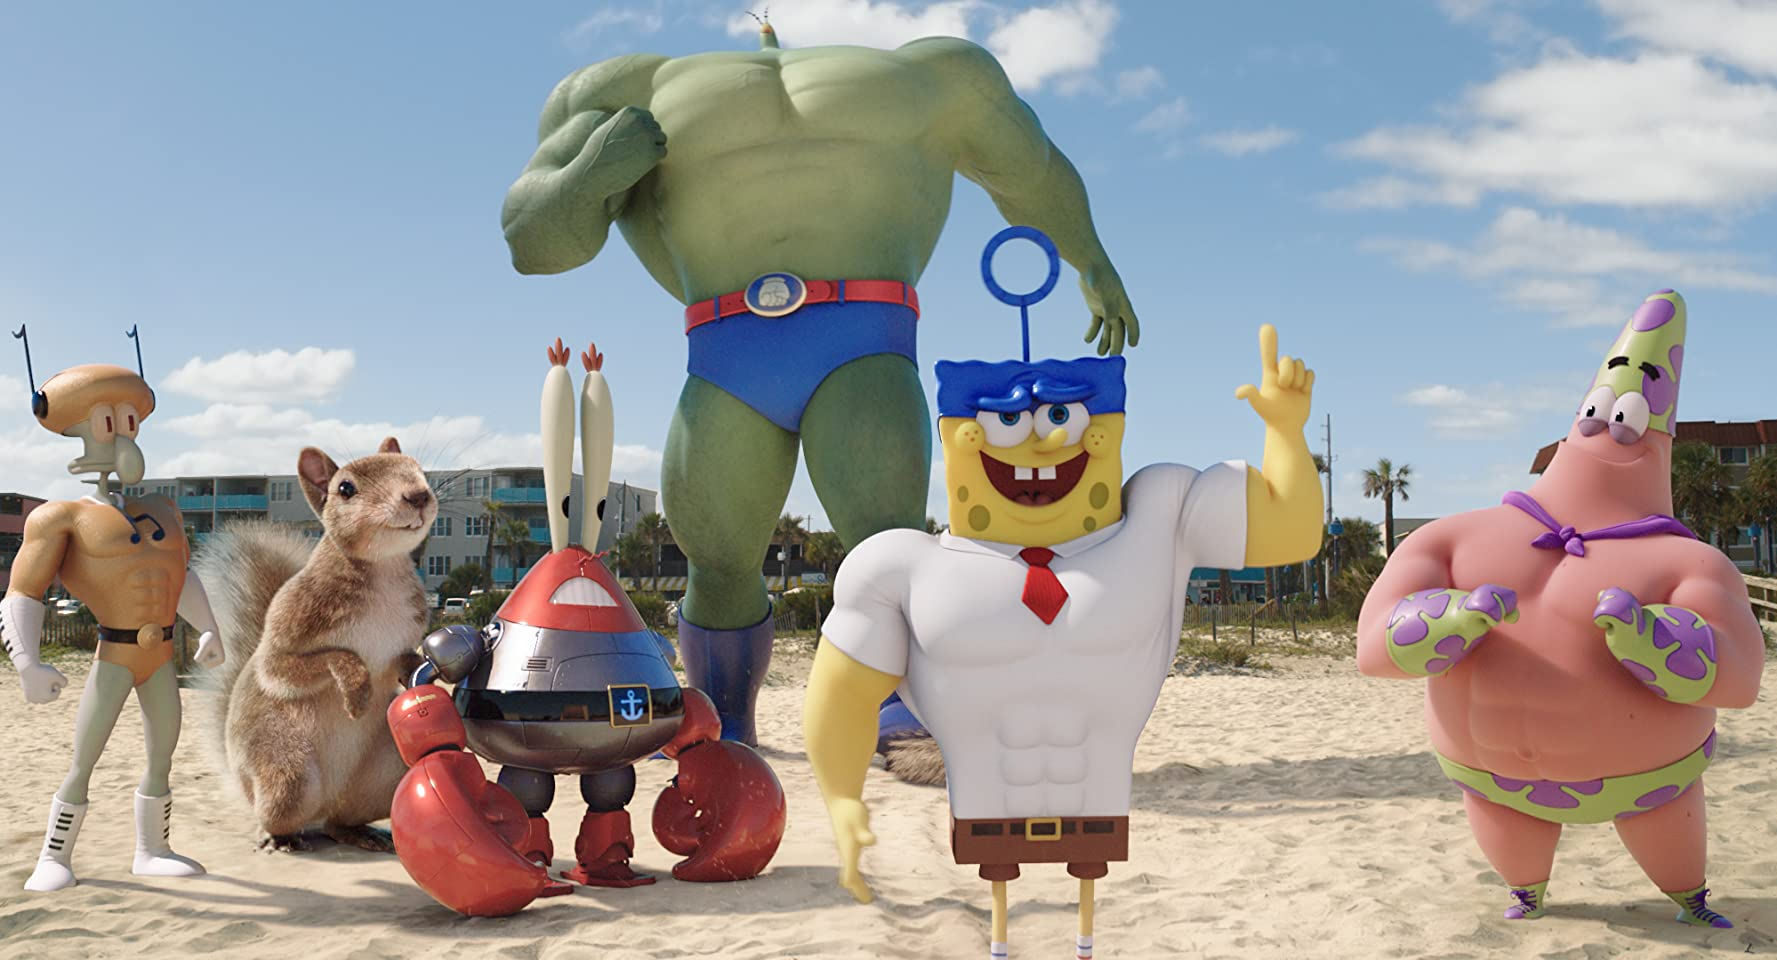 Clancy Brown, Rodger Bumpass, Bill Fagerbakke, Tom Kenny, Carolyn Lawrence, and Mr. Lawrence in The SpongeBob Movie: Sponge Out of Water (2015)